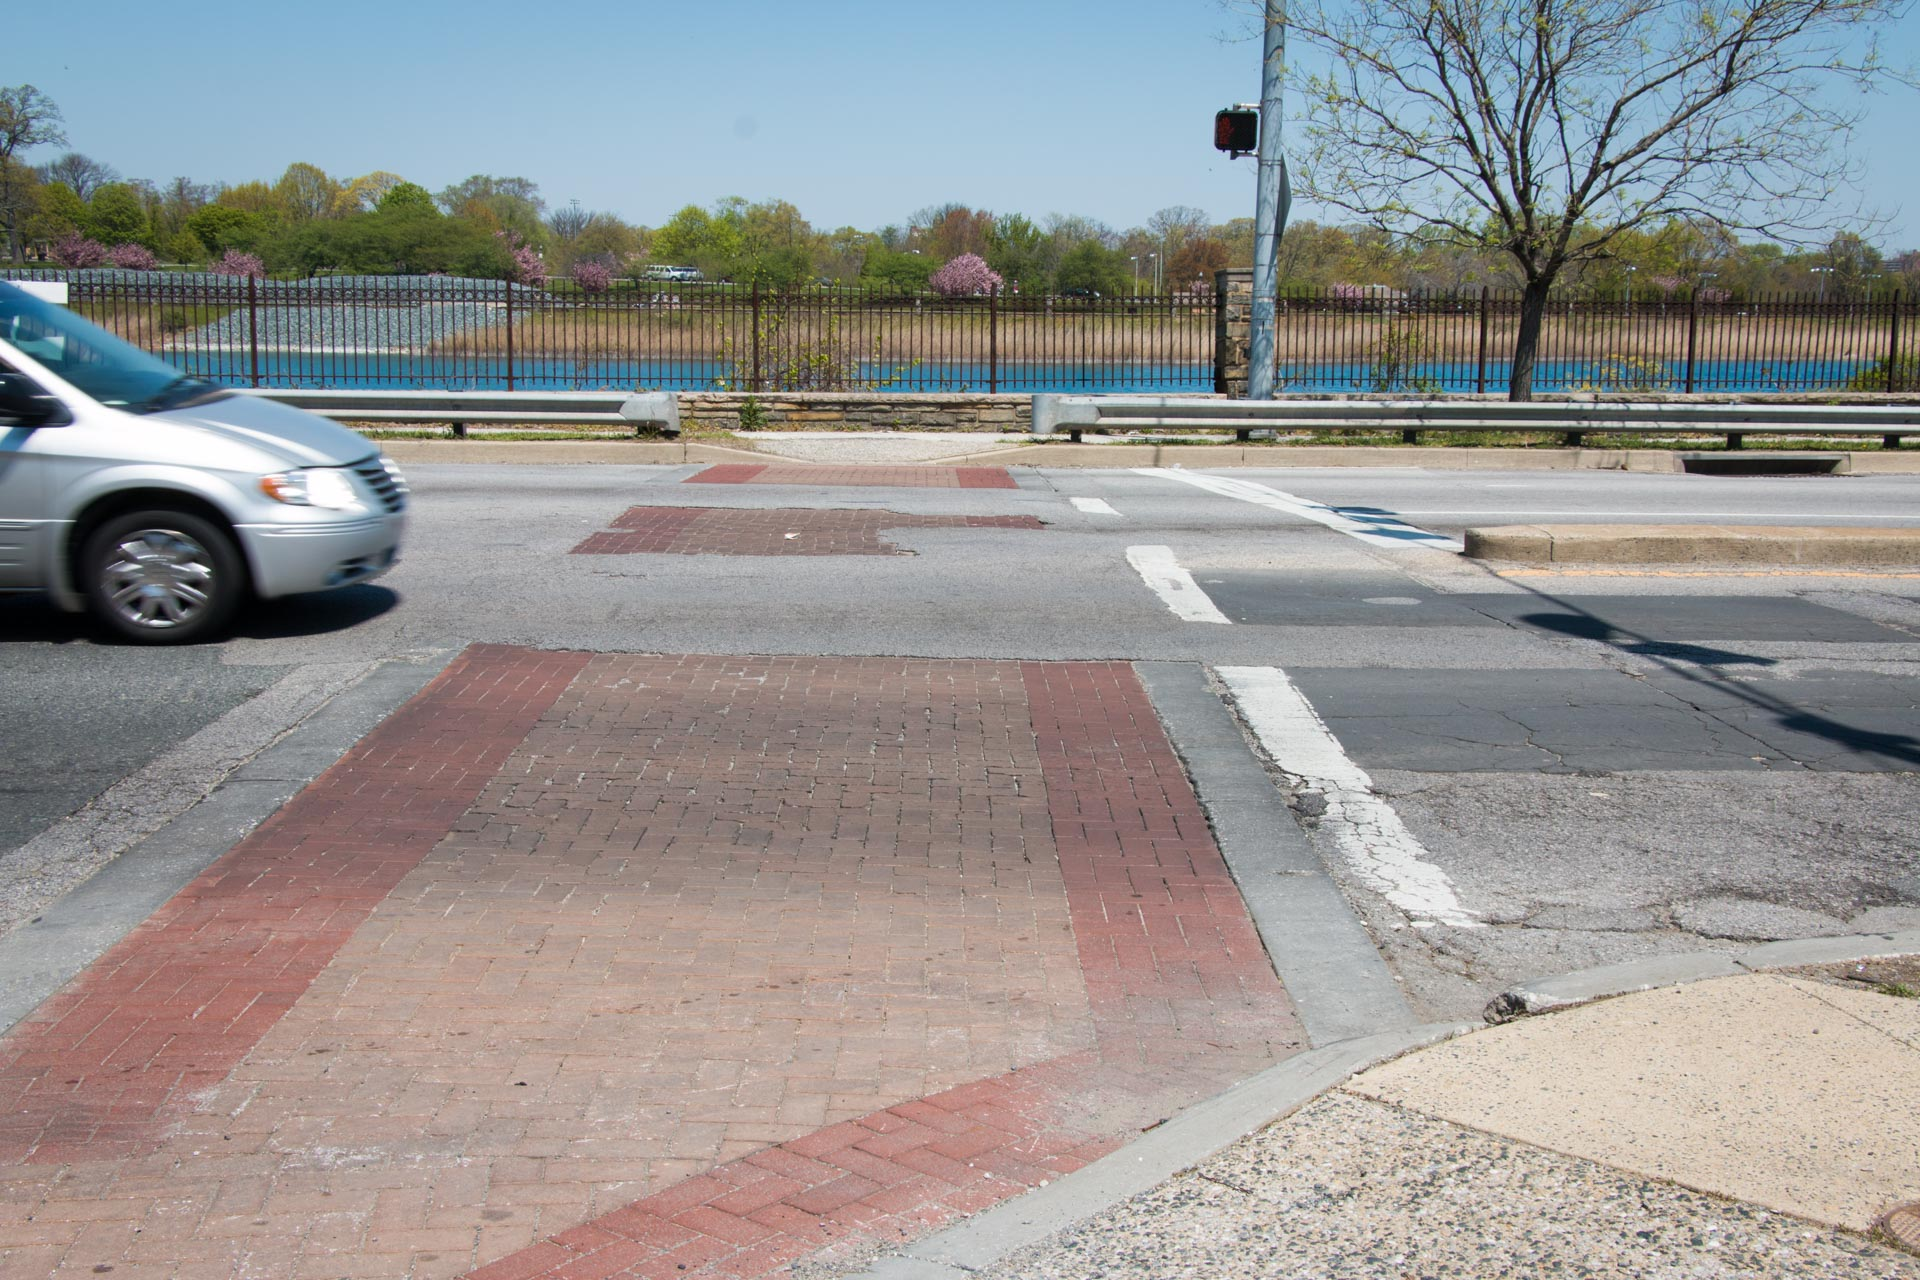 180501 Druid Hill Park pedestrian access conditions 04 Linden crosswalk